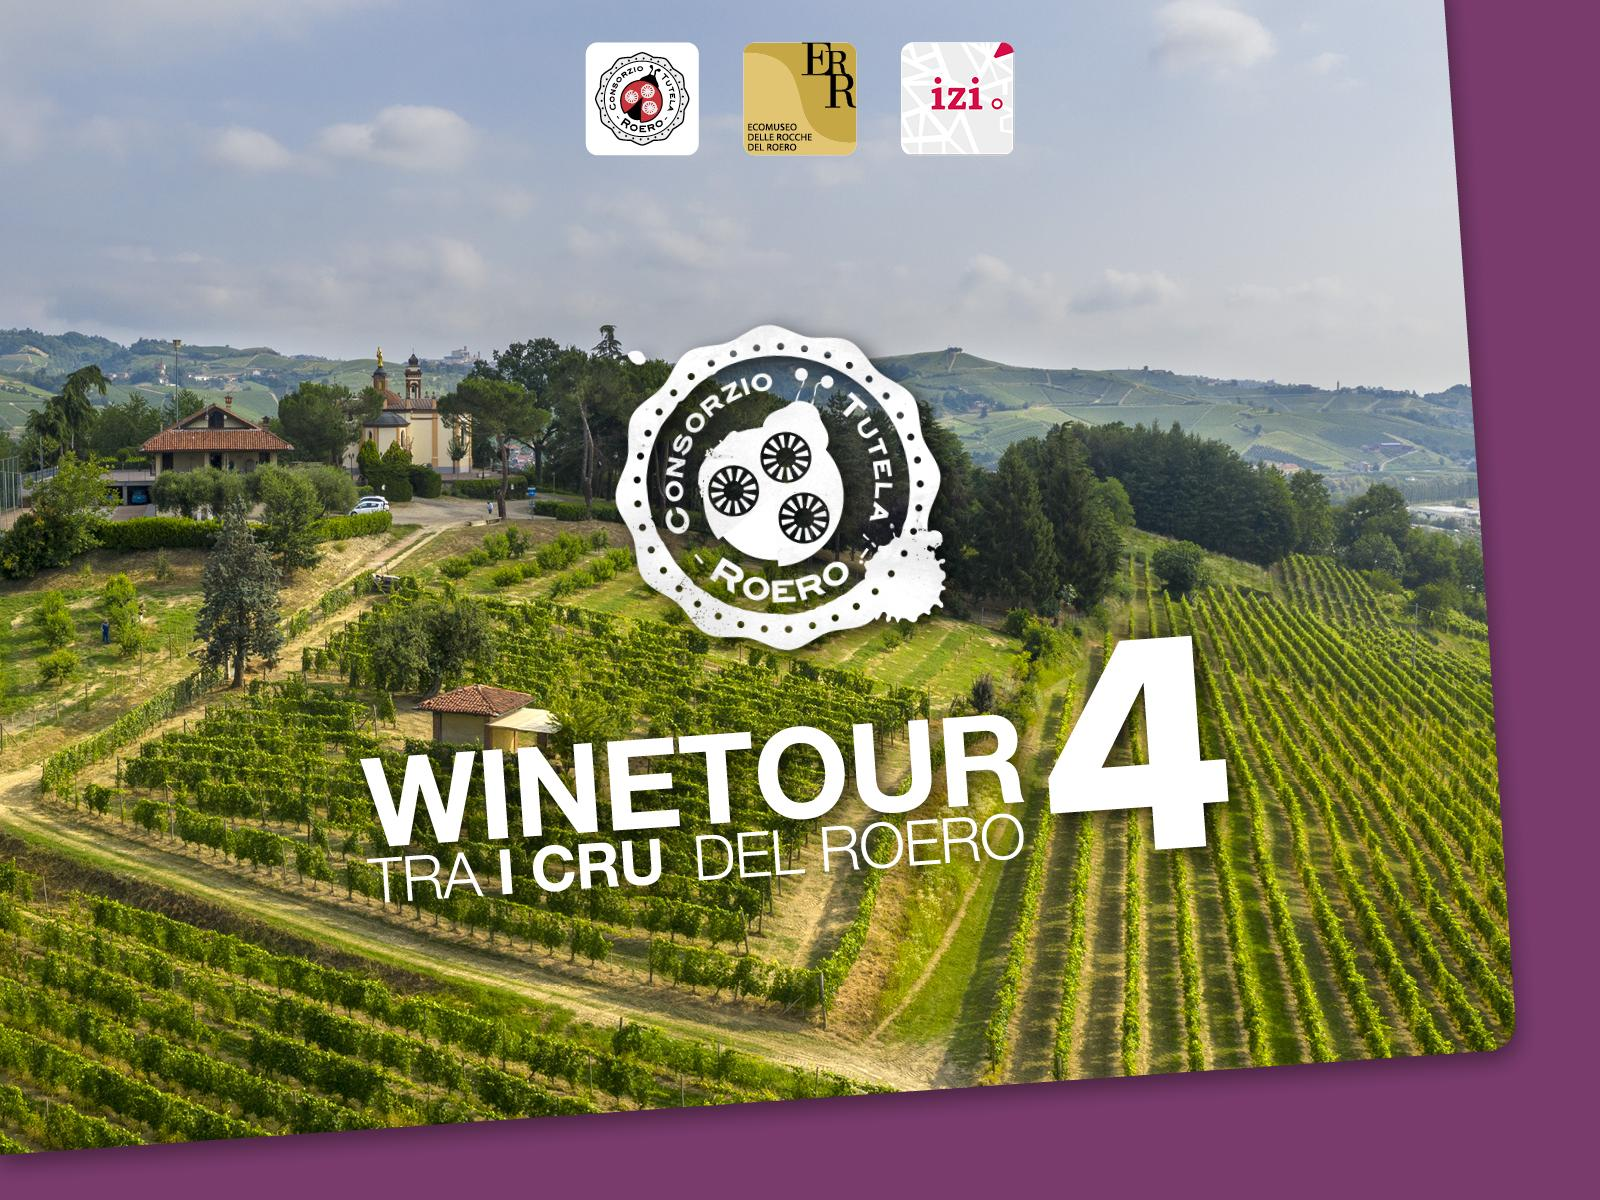 WineTour 4 – The panoramic crus of central Roero territory